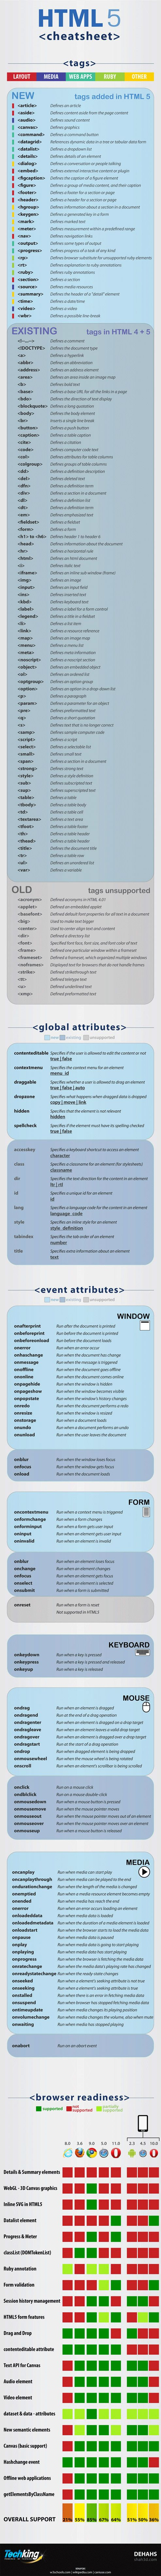 Hypertext Markup Language (HTML 5) Heat Cheat [Infographic]: Webdesign, Html5 Cheatsheet, Web Design, Website, Social Media, Cheat Sheets, Language, Infographic, Blog